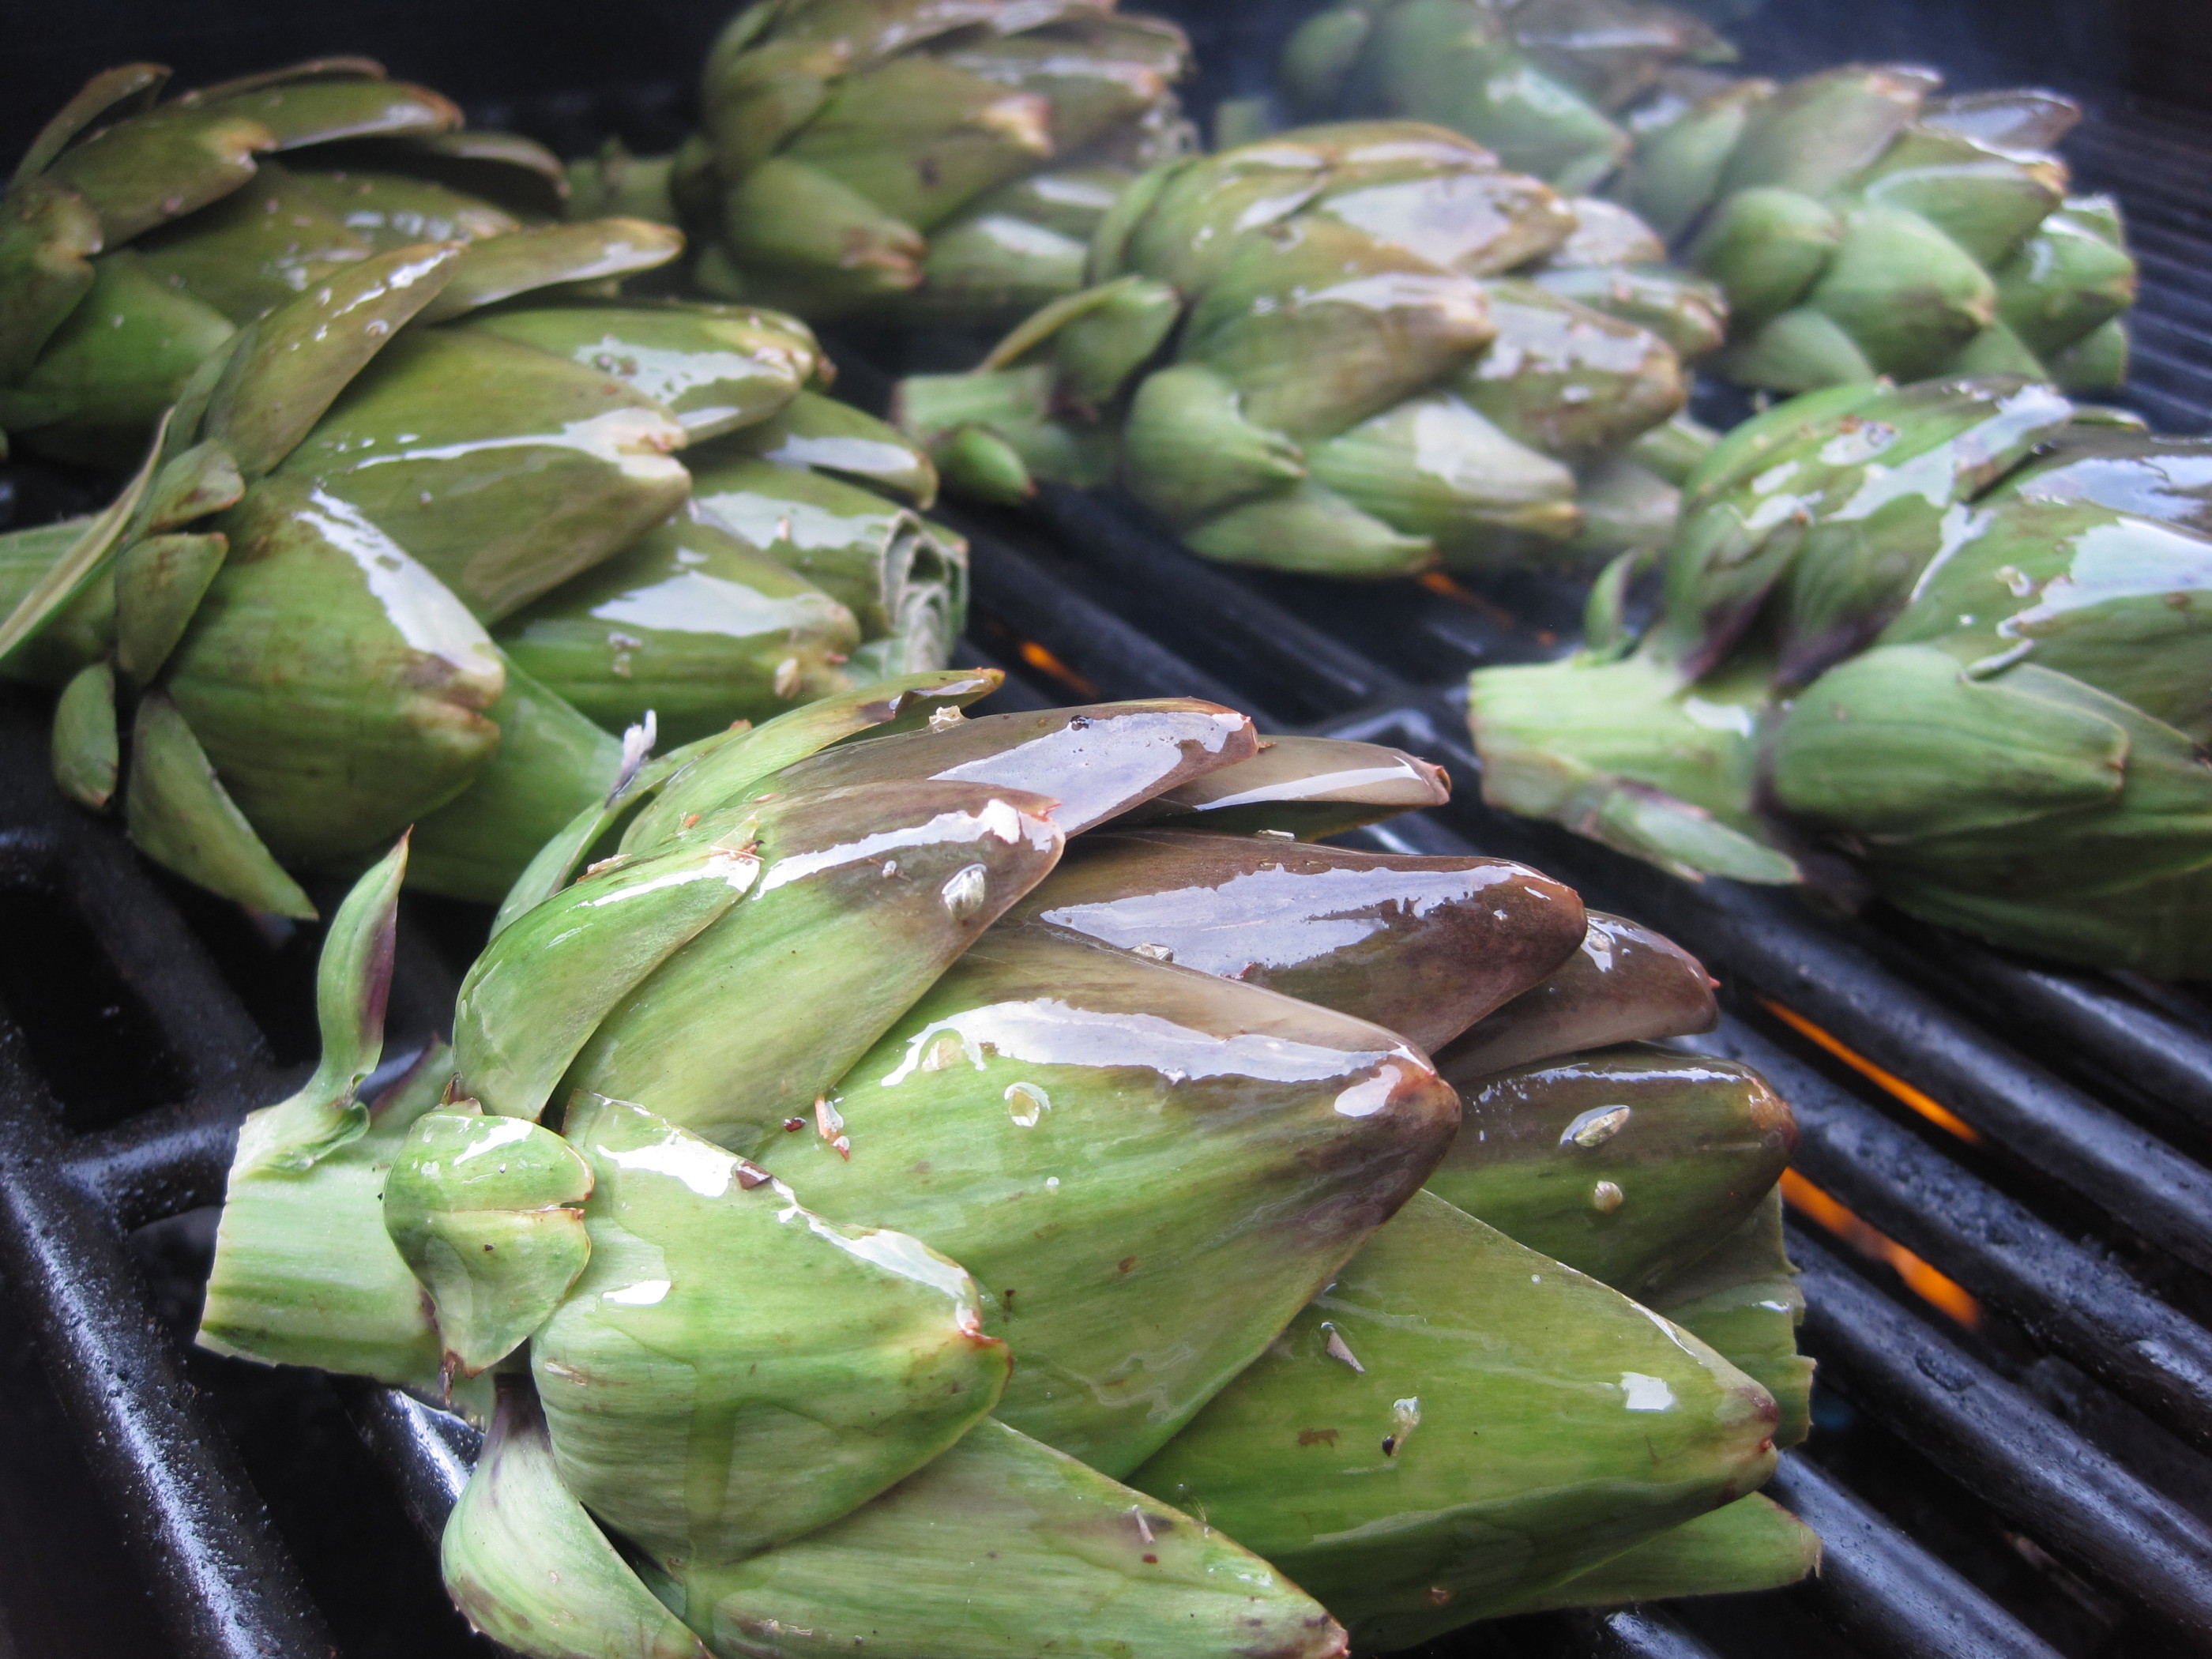 Grilled Garlic Artichokes with Dipping Sauce